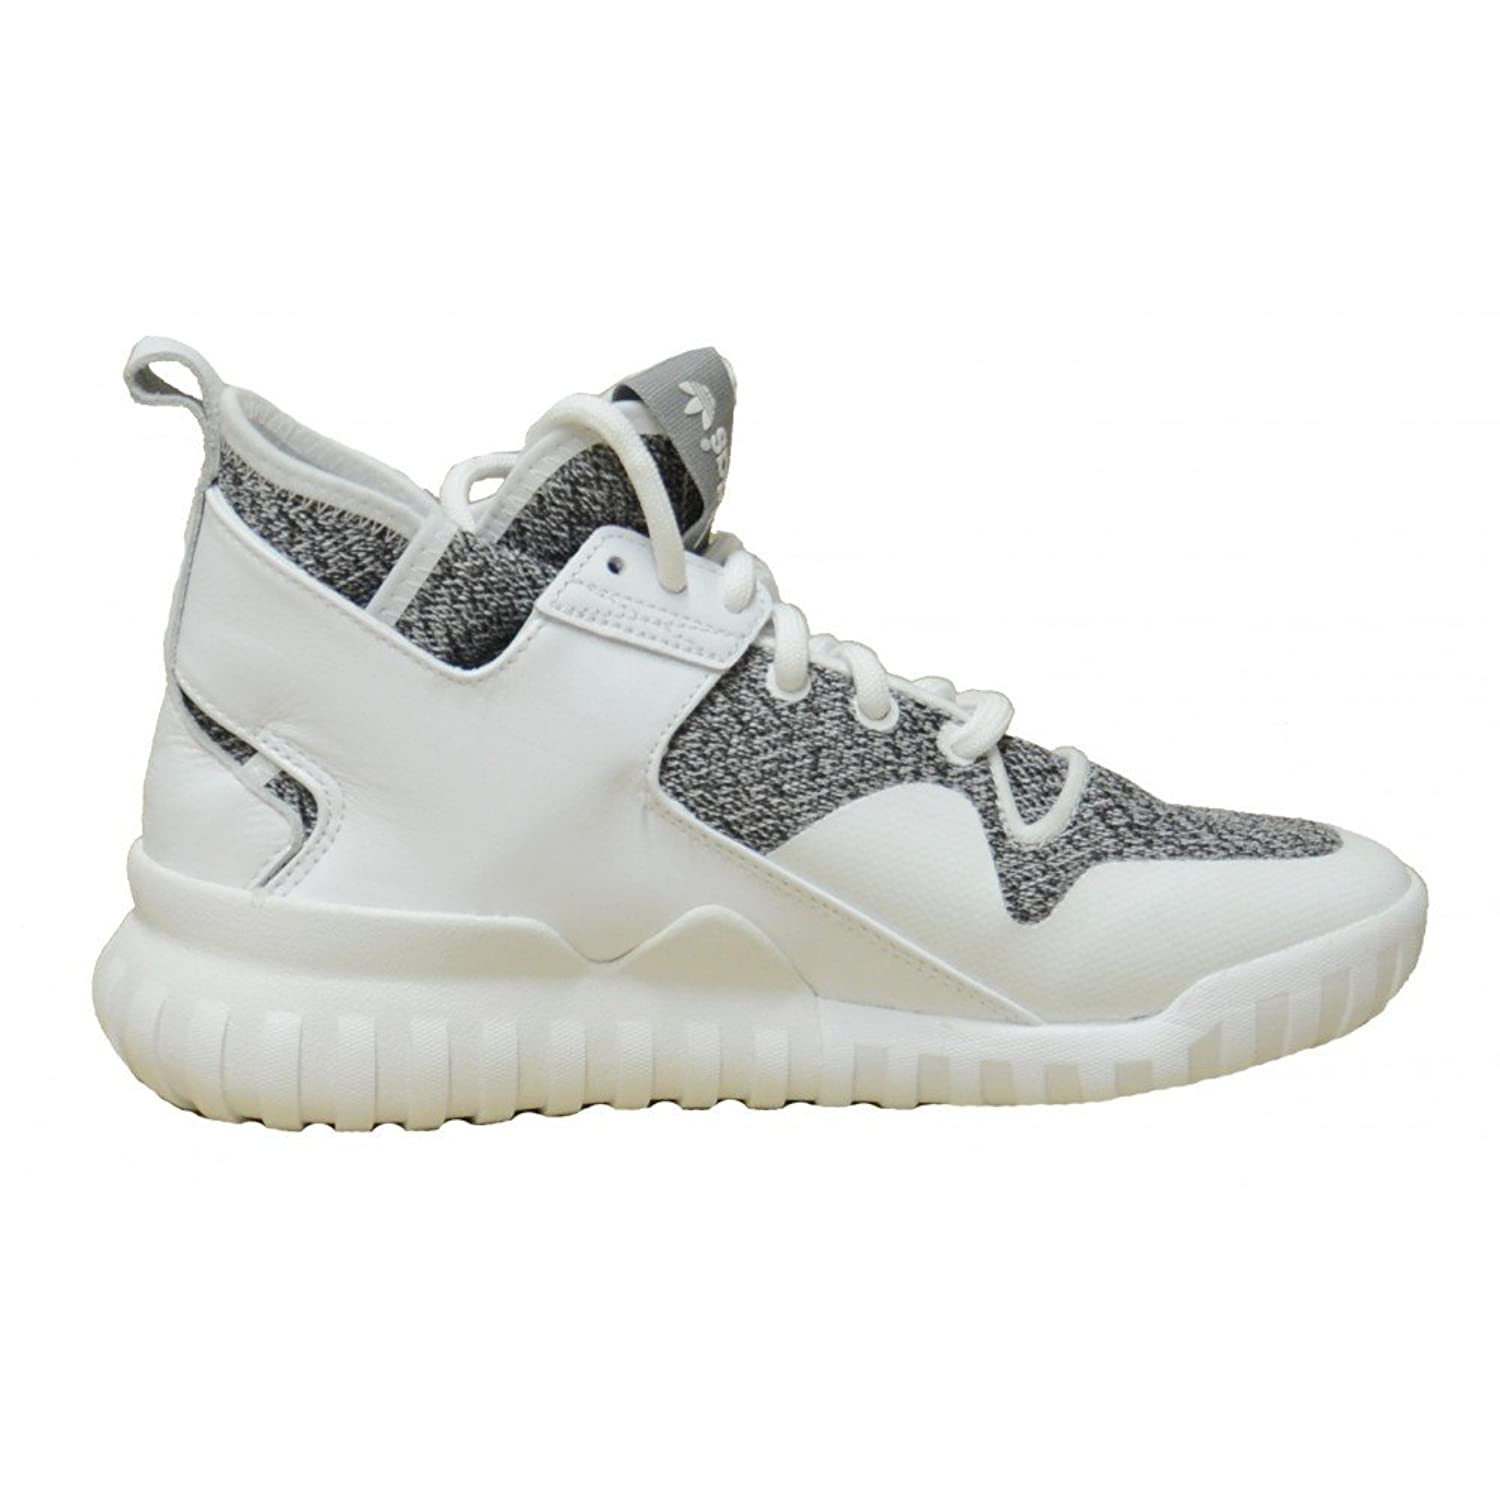 Adidas originals Adidas Tubular X Primeknit Crystal White/ Grey One